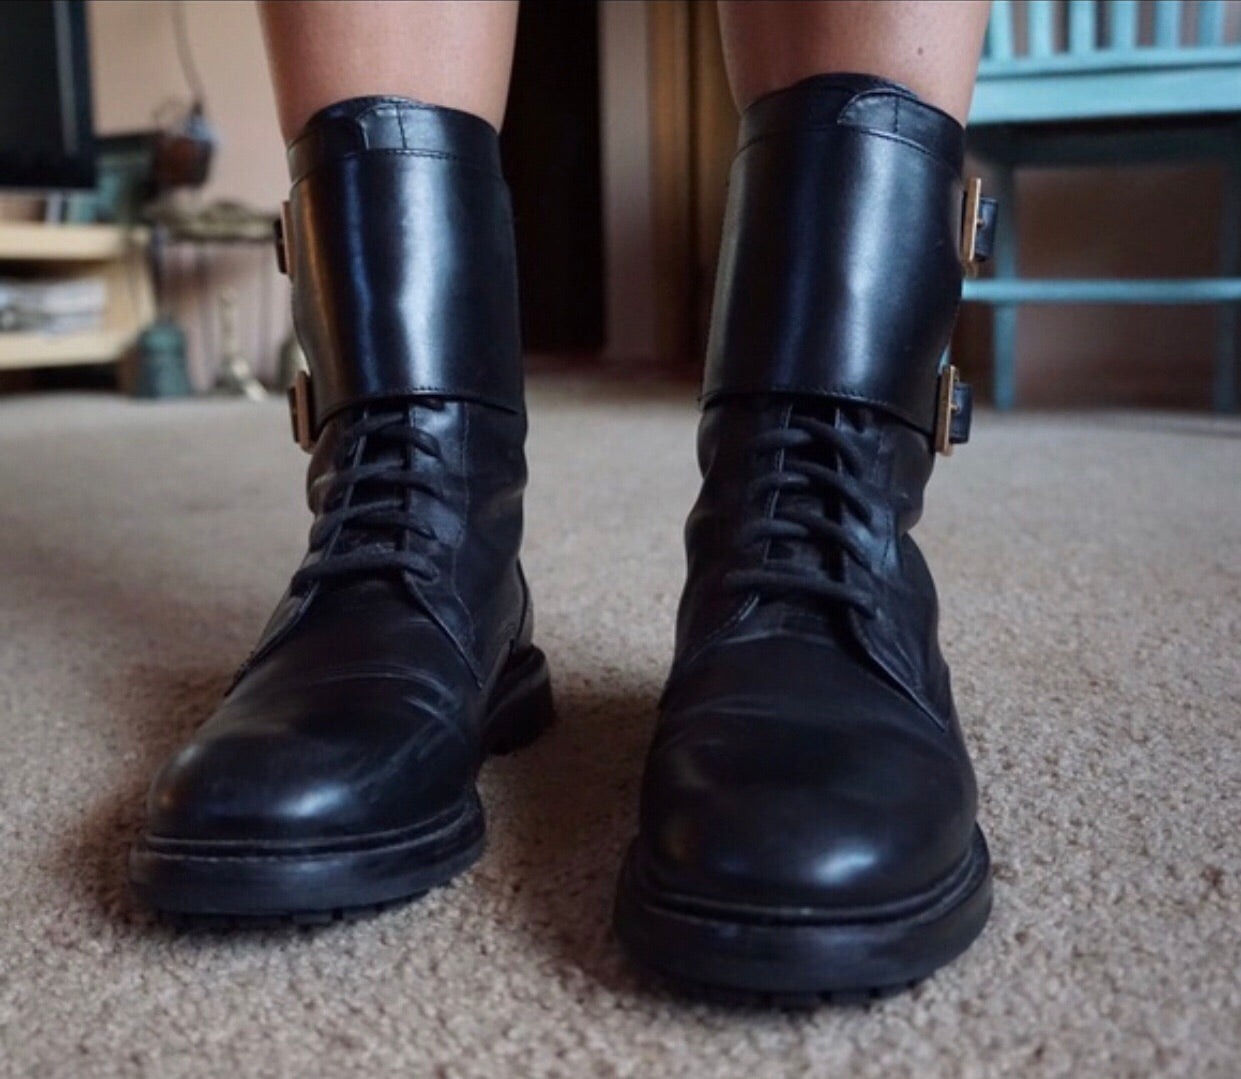 Tory Burch Black Combat Boots size 6